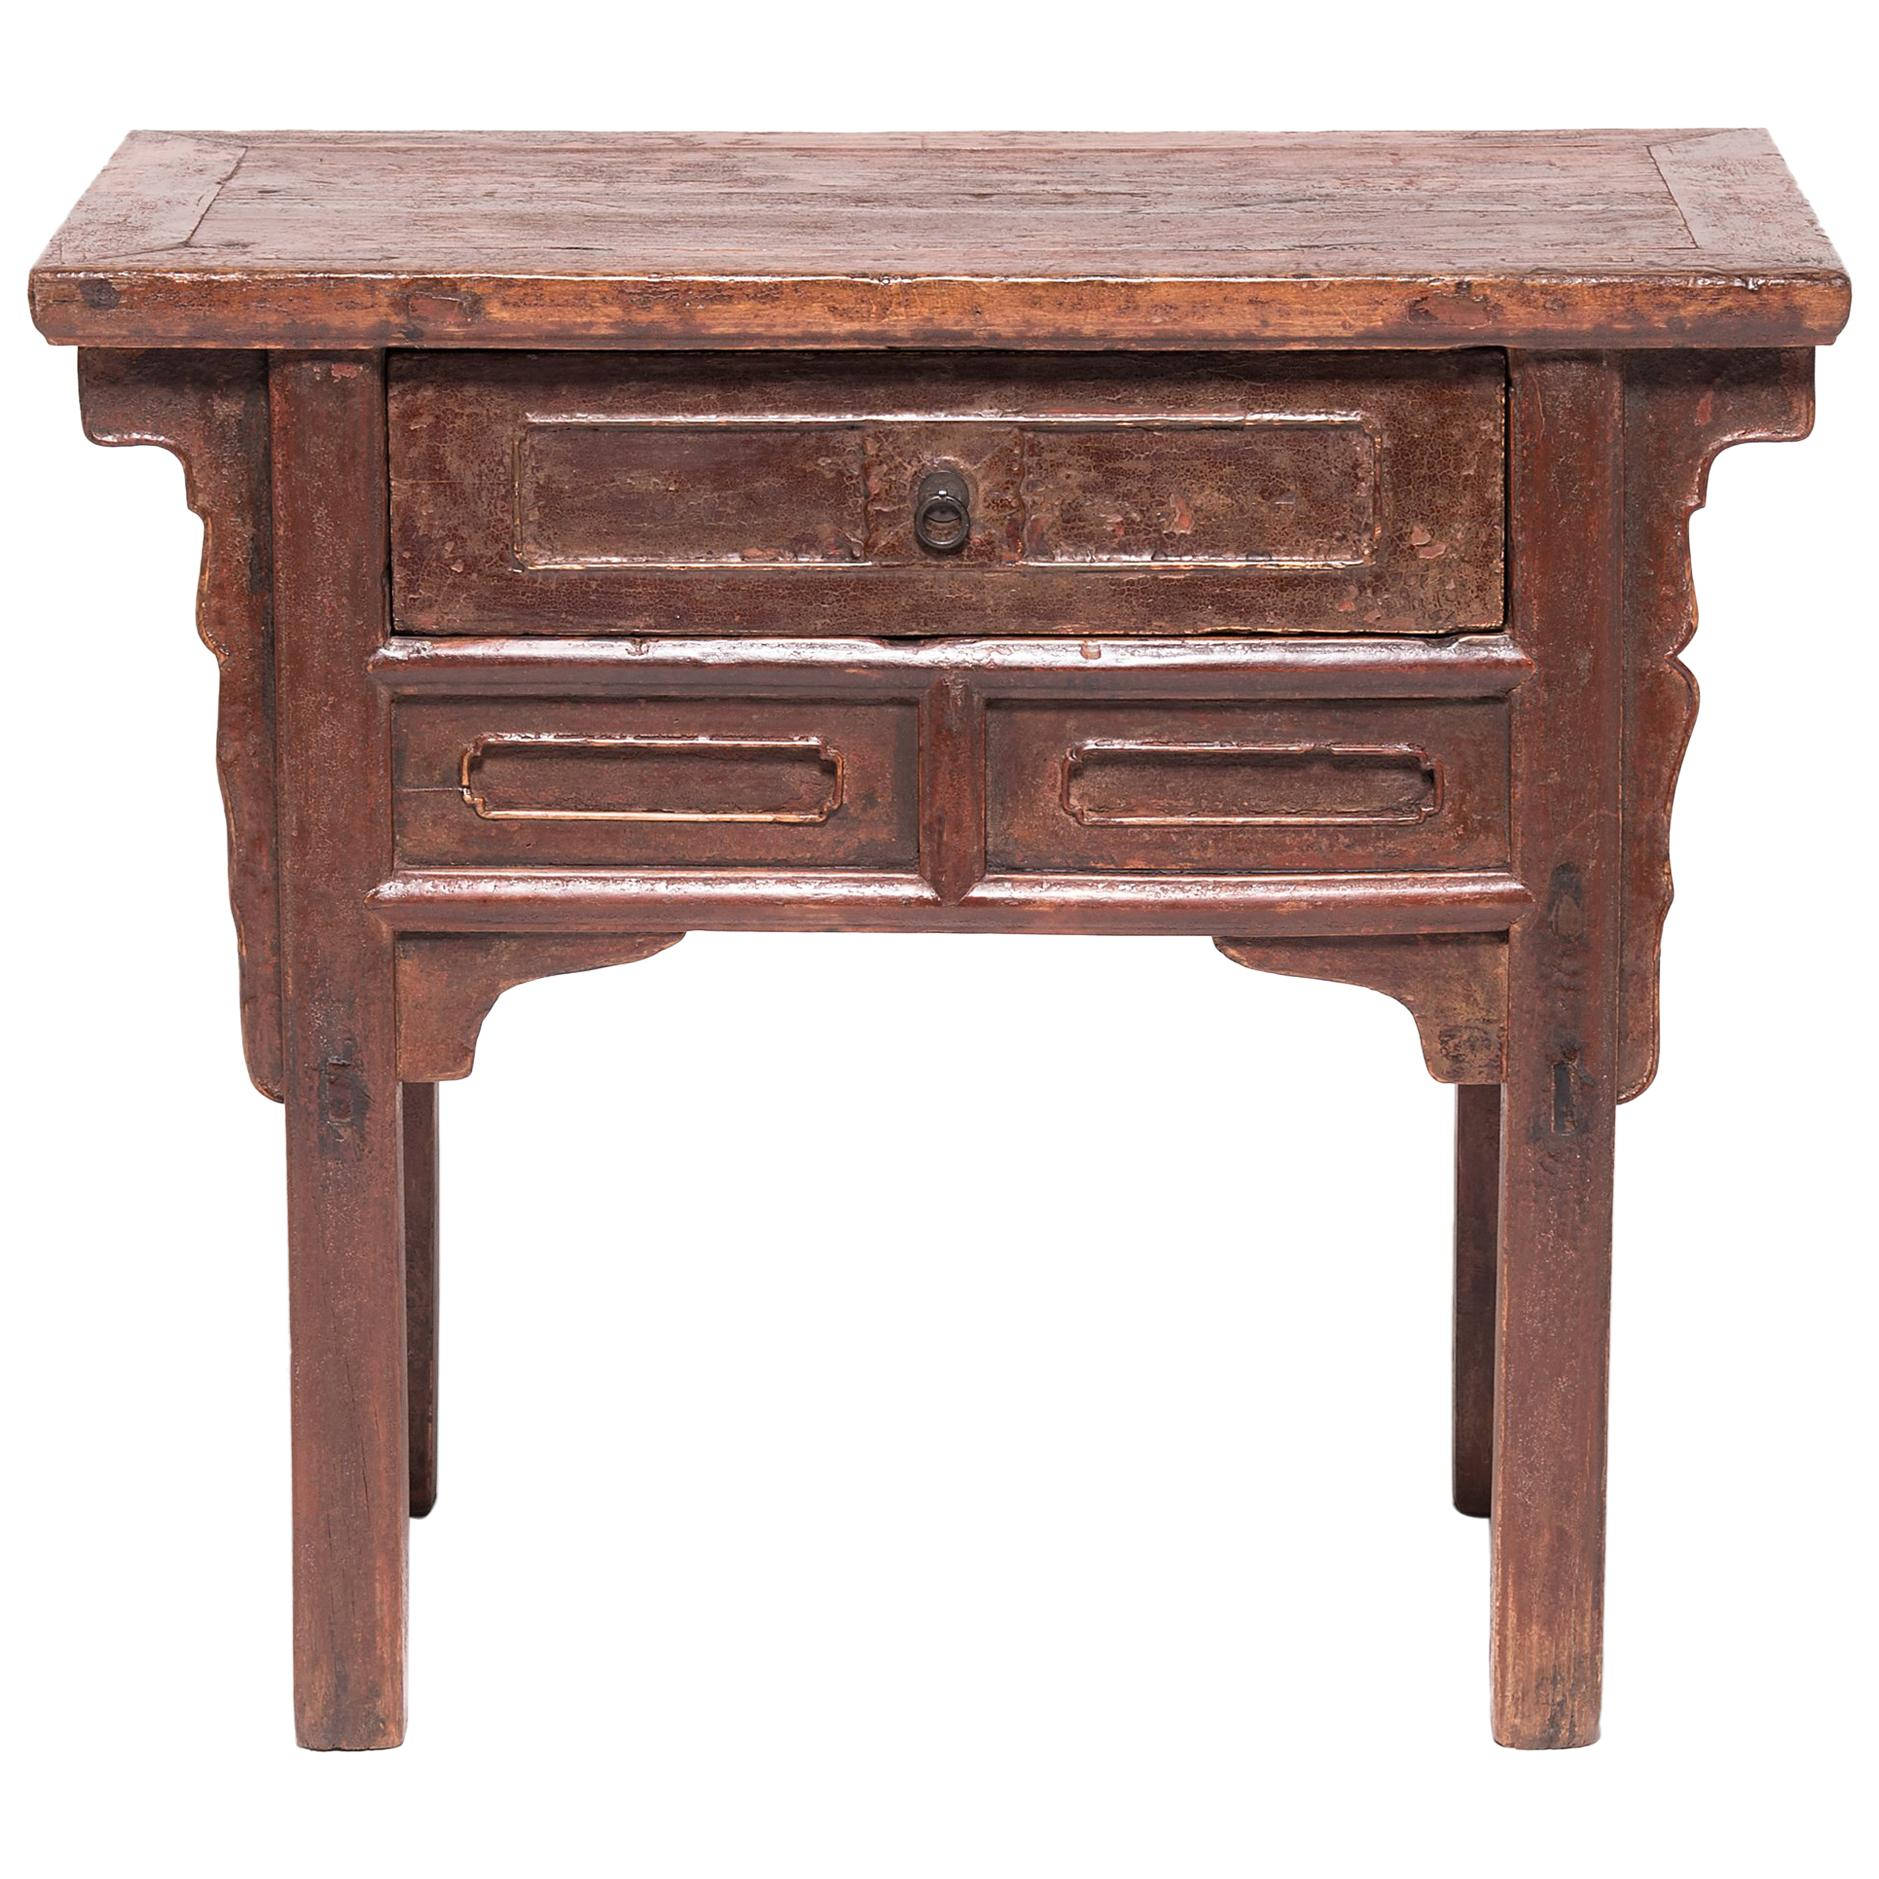 19th Century Chinese Rustic Lacquer Side Table with Drawer